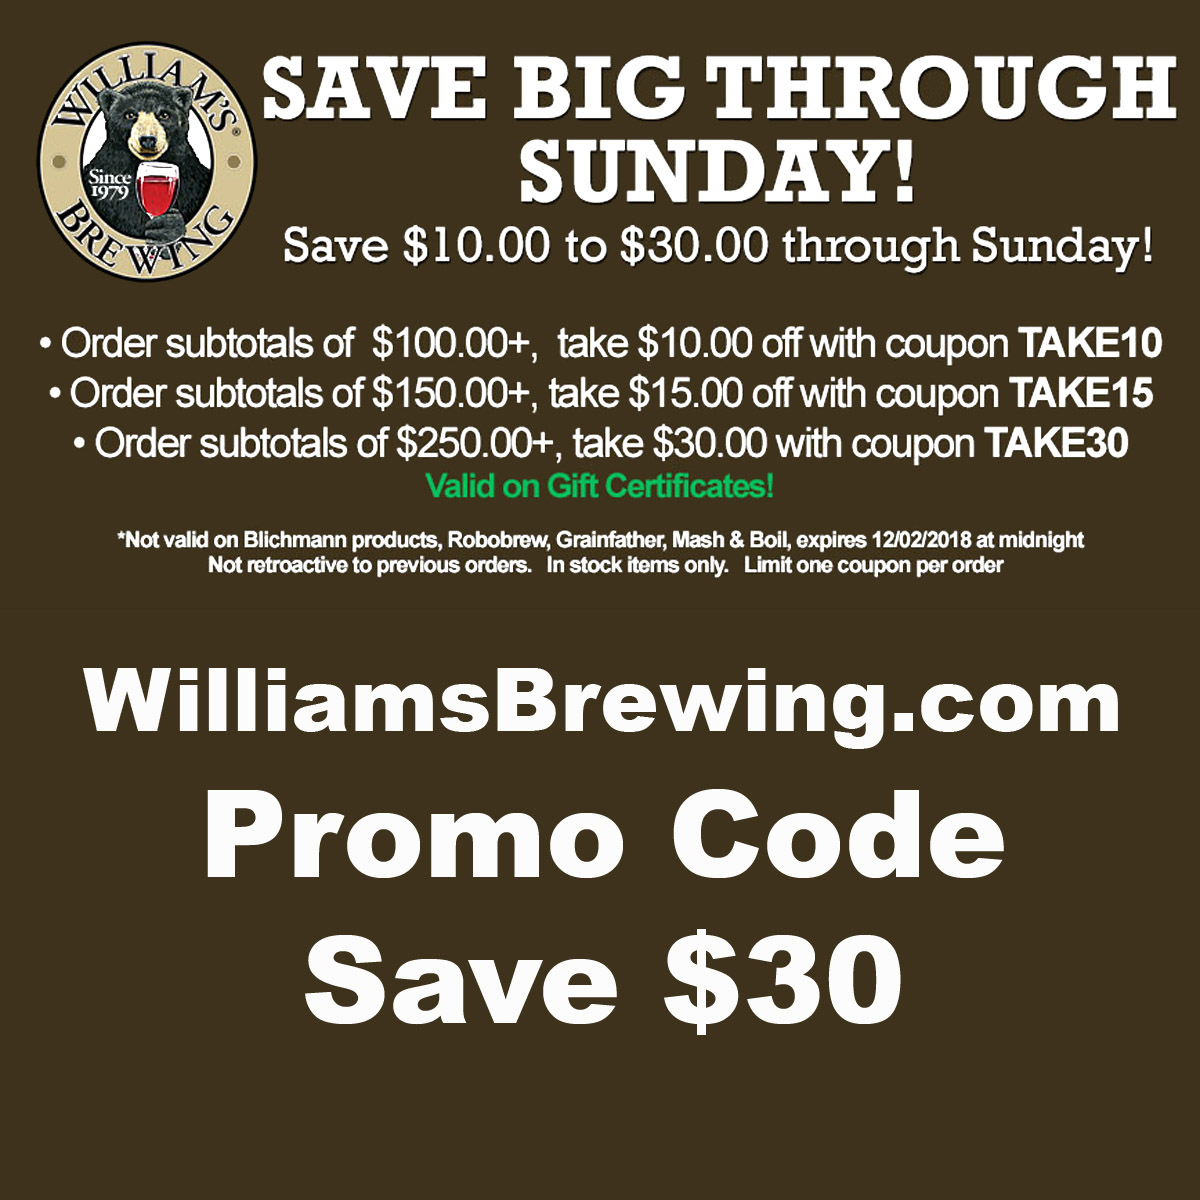 Williams Brewing Save Up To An Extra $30 At Williams Brewing With This WilliamsBrewing.com Promo Code Coupon Code